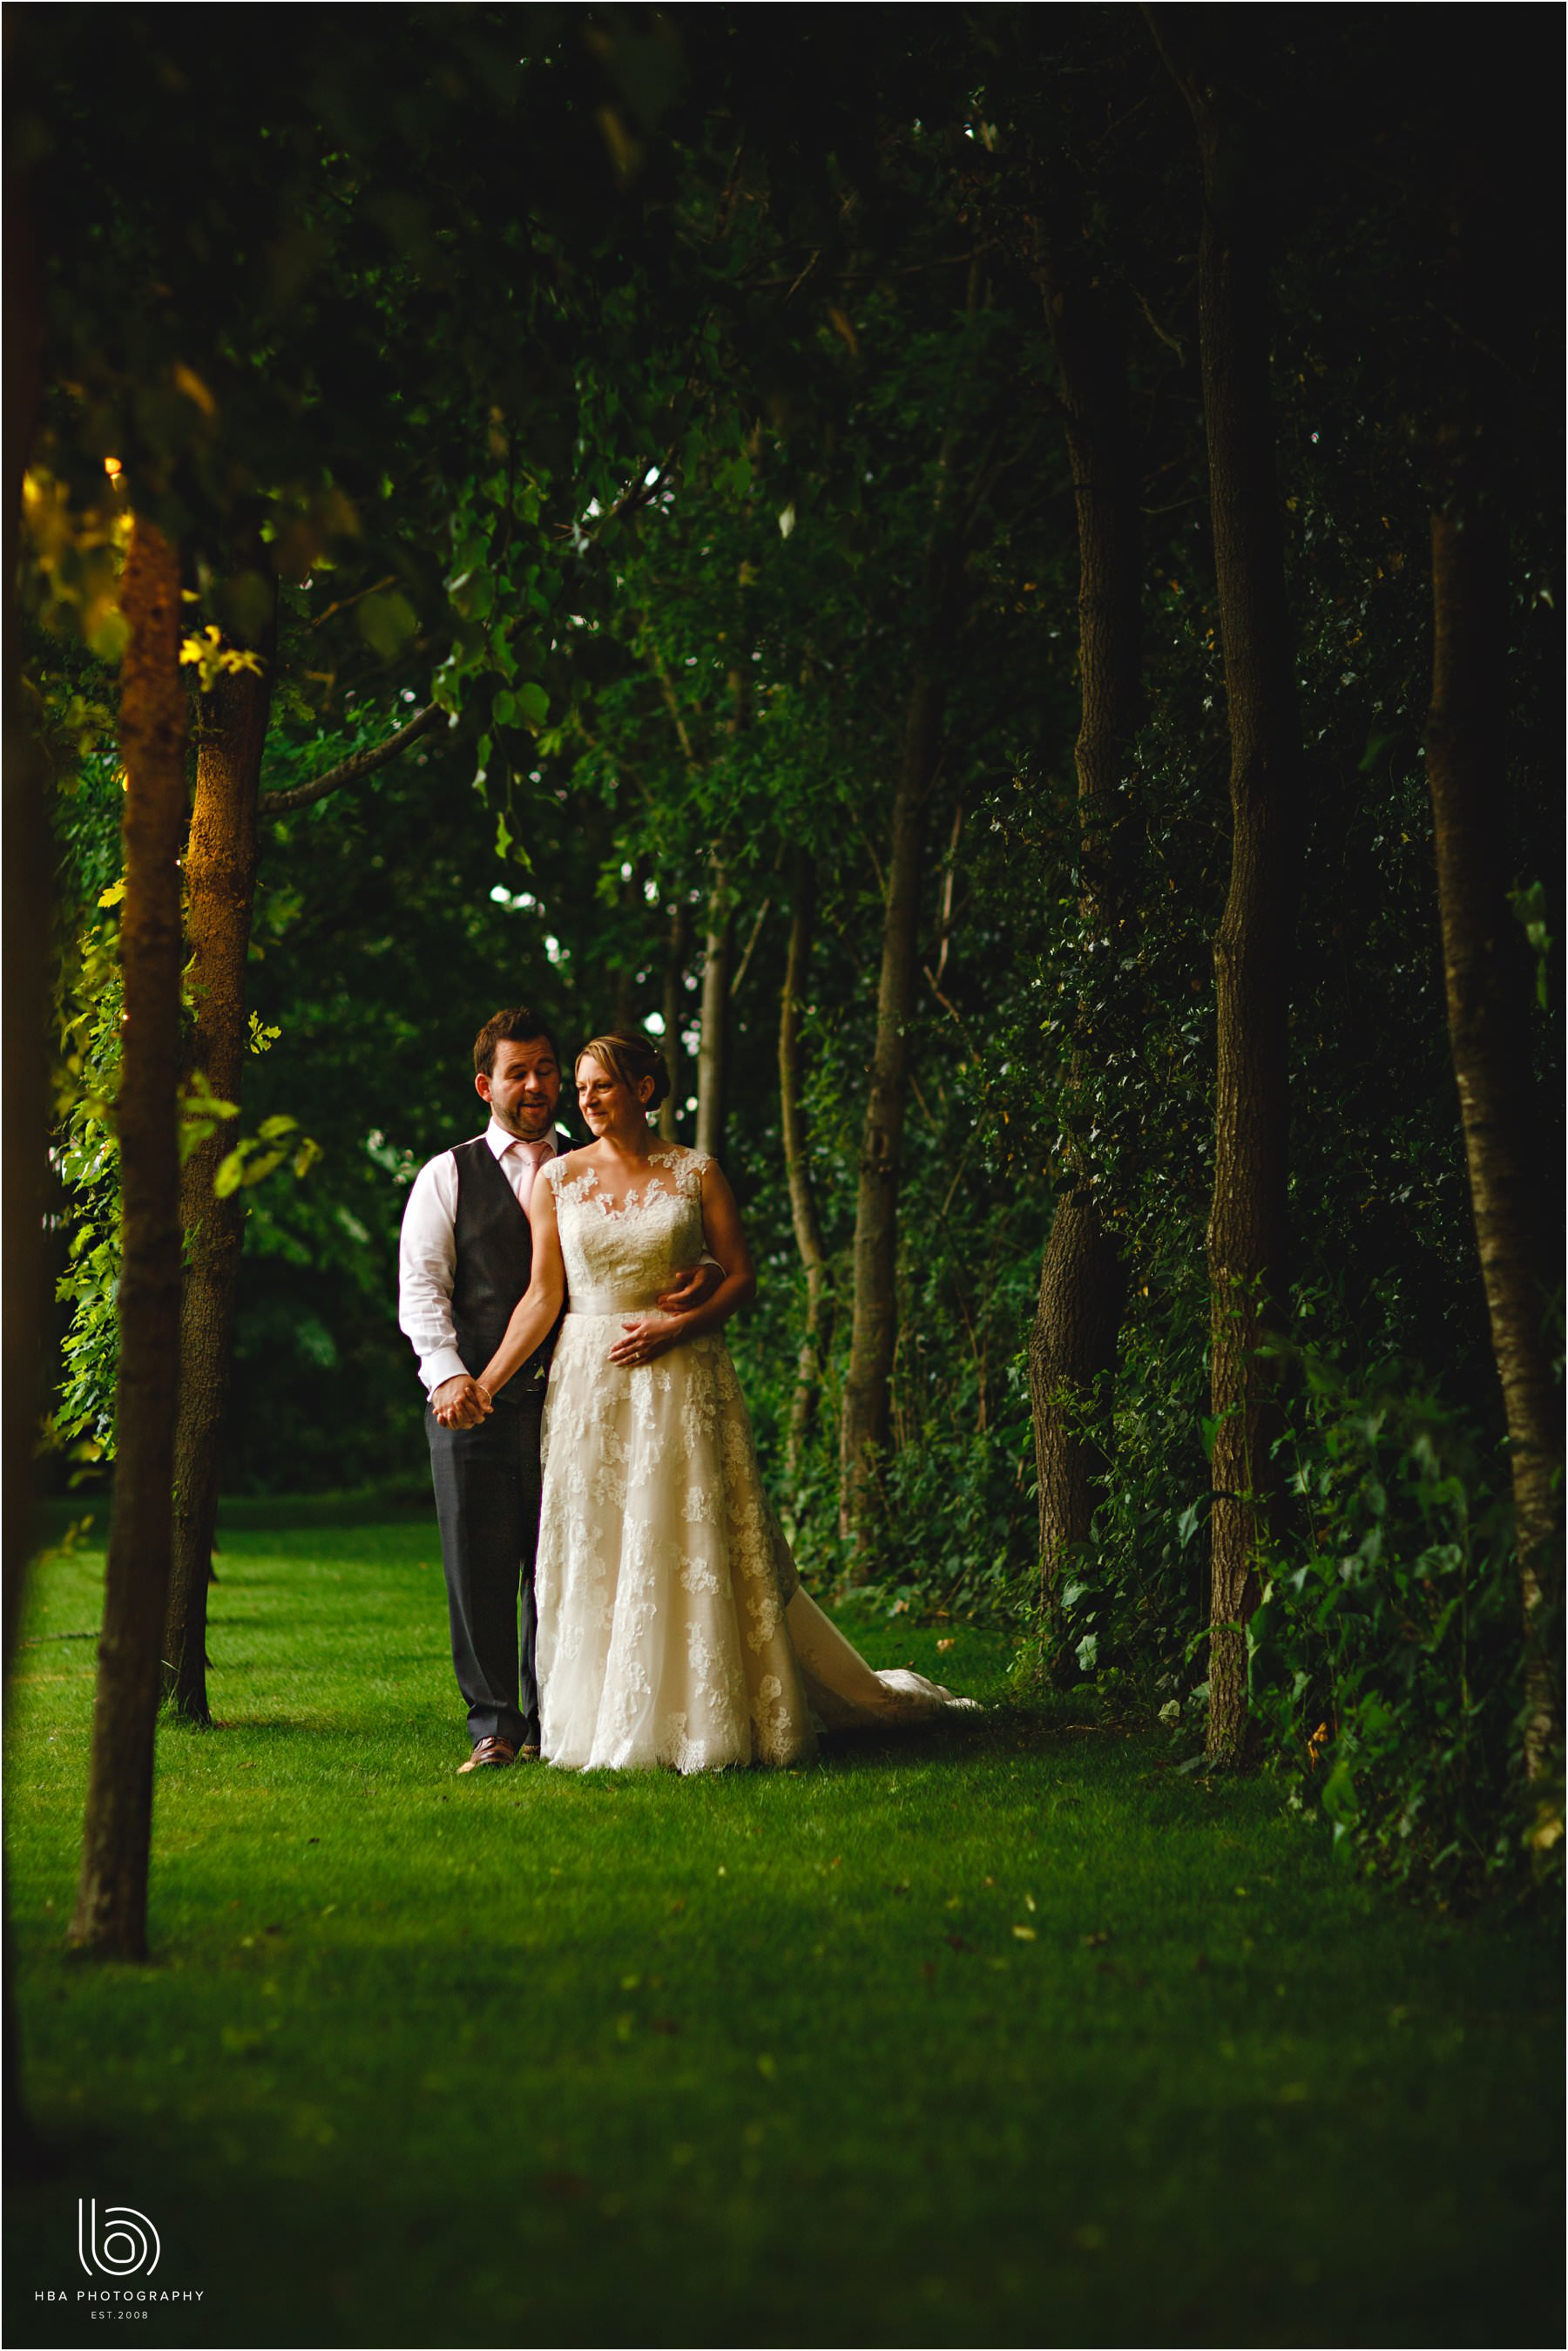 the bride & groom in the trees